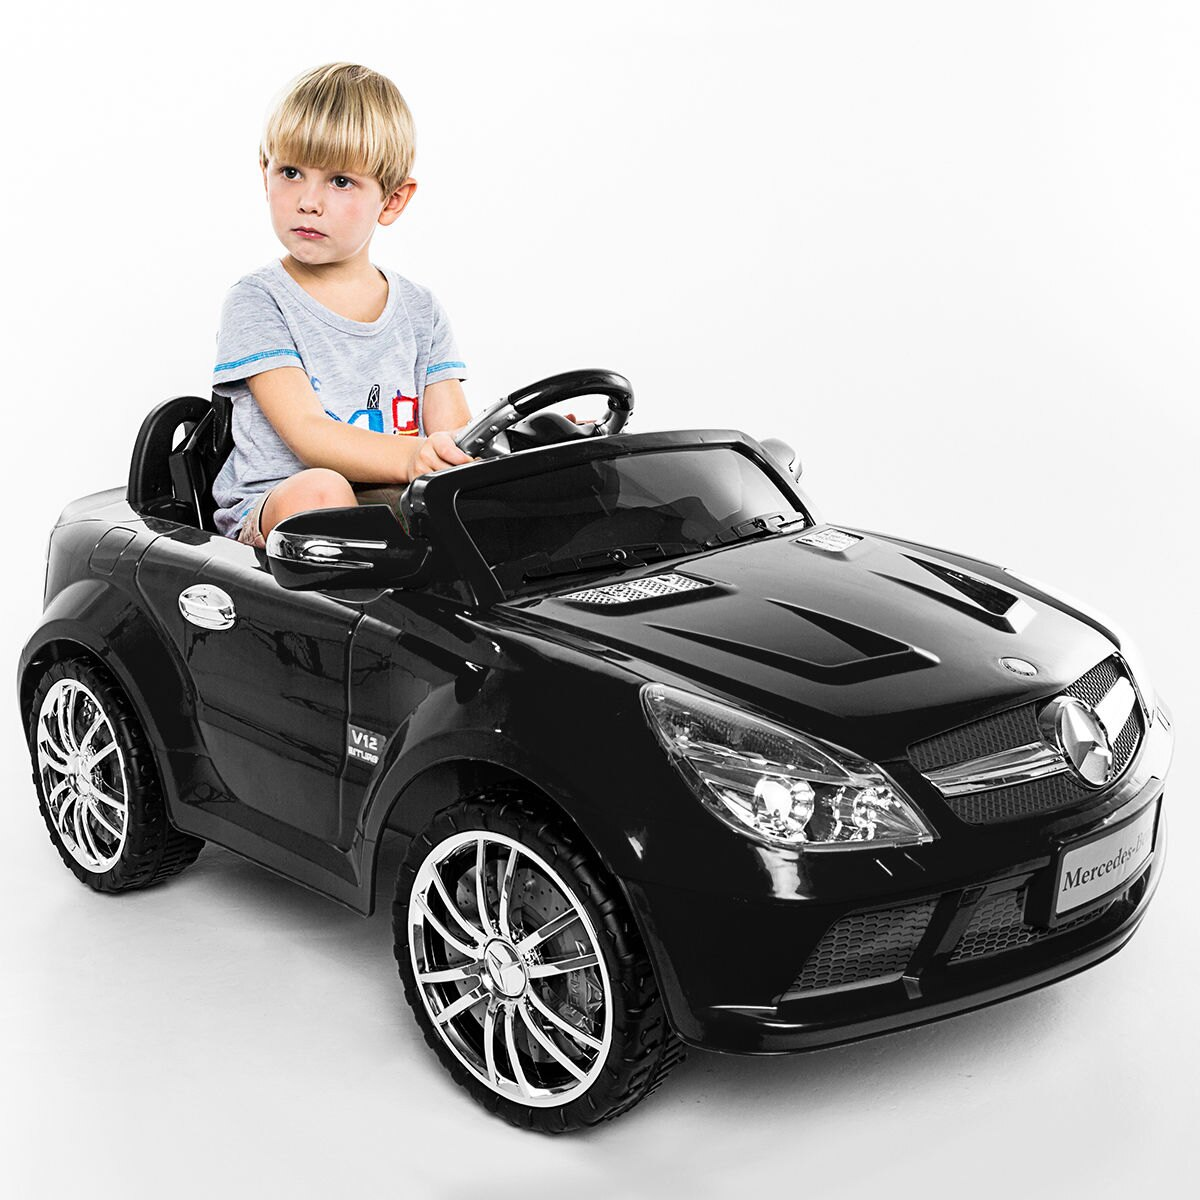 Car For Kids >> Costway 12v Mercedes Benz Sl65 Electric Kids Ride On Car Music Rc Remote Control Black